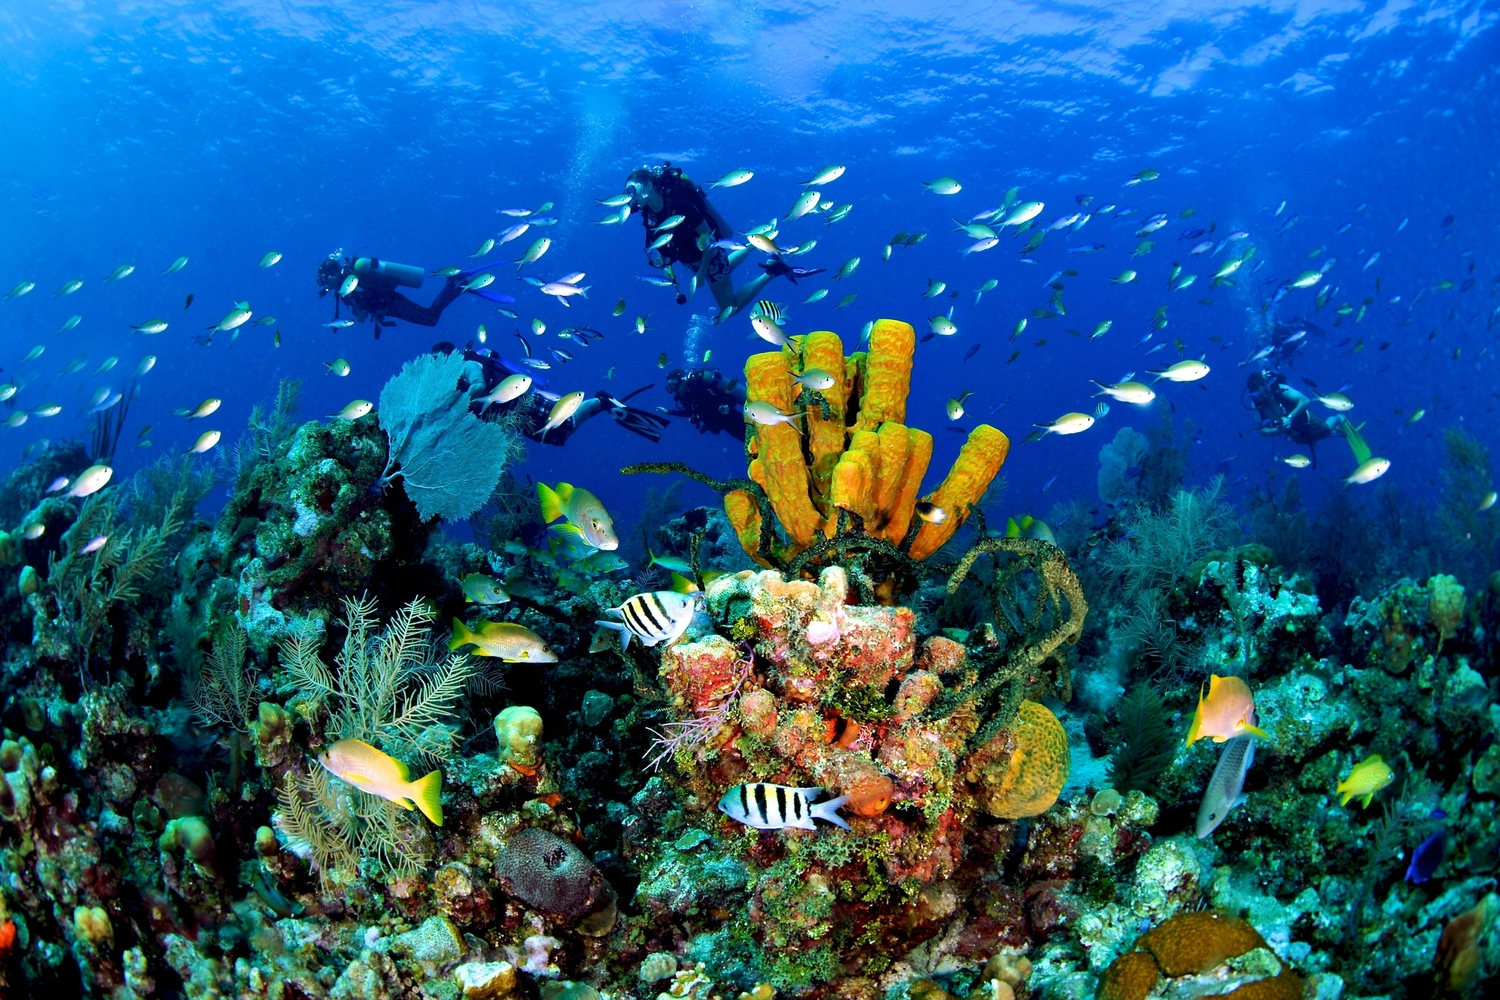 Scuba divers exploring the colourful Cayman Reef